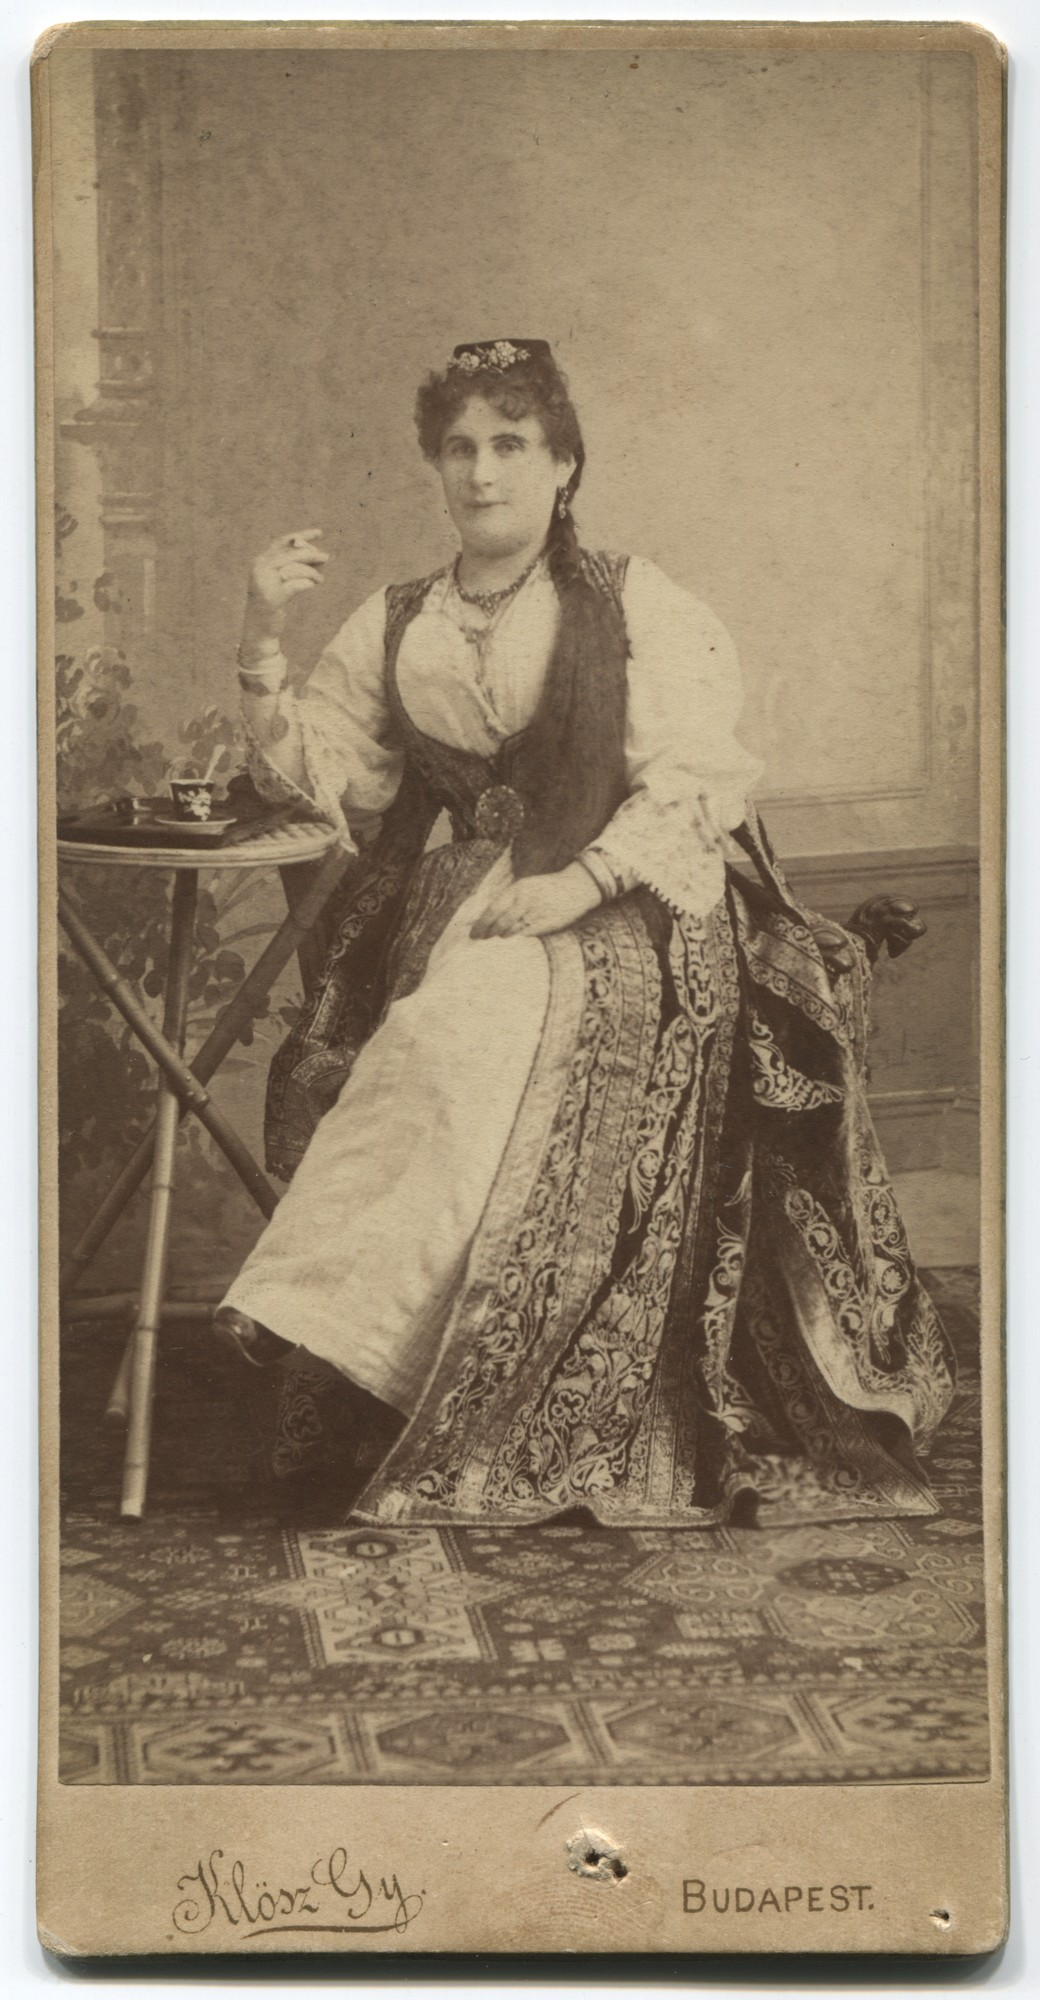 Studio portrait of Milka Hun, © Museum of City of Sarajevo